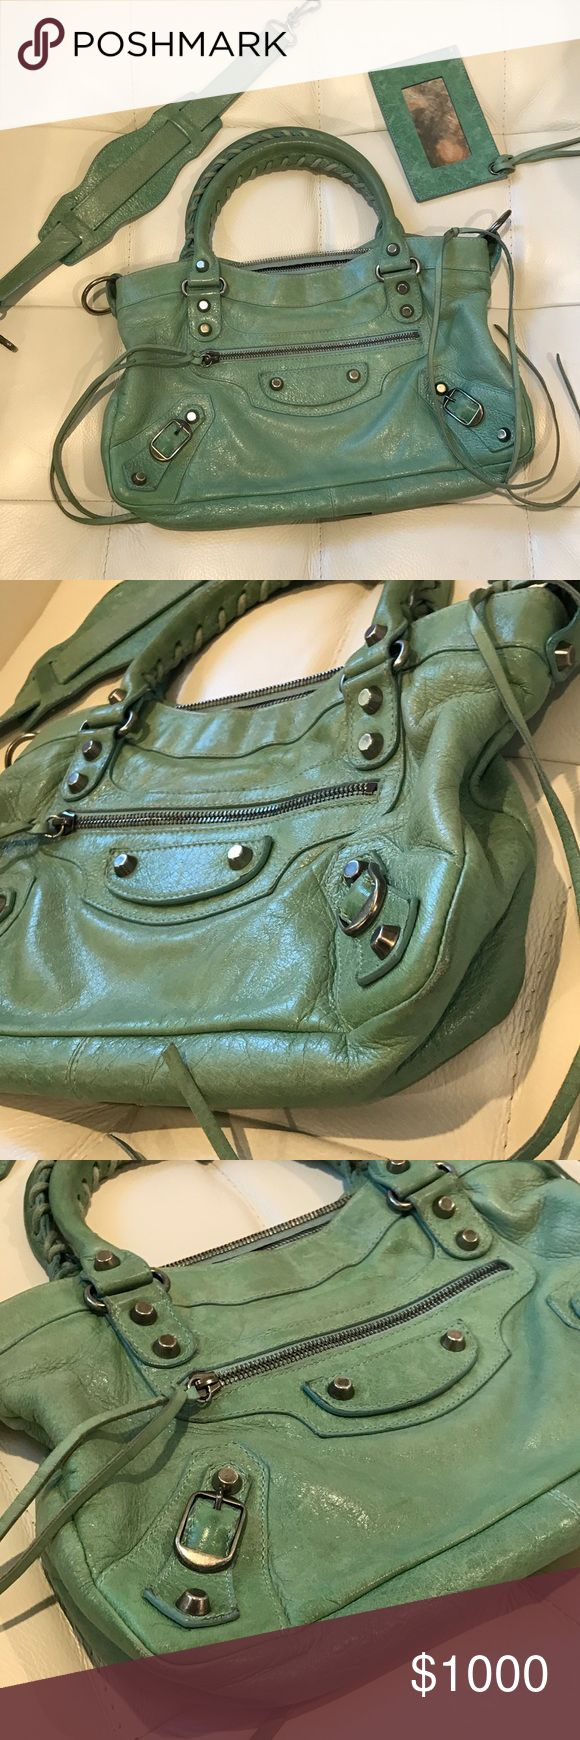 Balenciaga Vintage 2004 Seafoam First w/Pewter Hw - Exterior: Minimal wear on corners and body. Beautiful Chèvre.  - Handles: Stiff and rigid w/ Slight wear & Some discoloration (see pics!) - Hardware: Ok Condition - Interior Tag: Normal Wear - Interior Lining: Clean  - Odor: None Balenciaga Bags Shoulder Bags